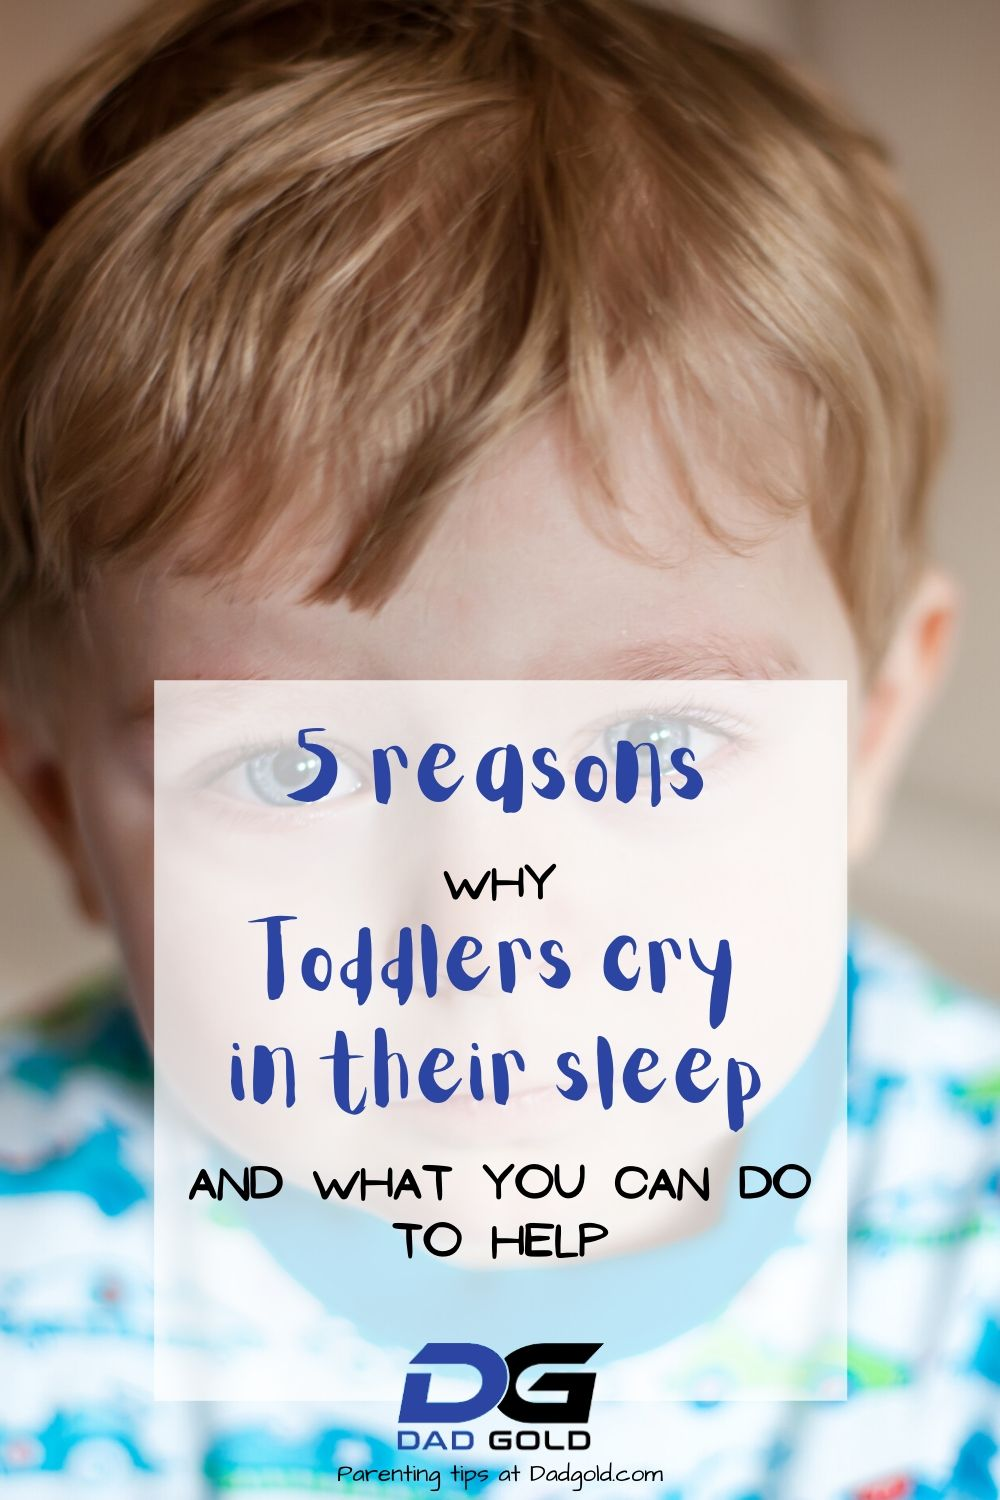 why do toddlers cry in their sleep (1)